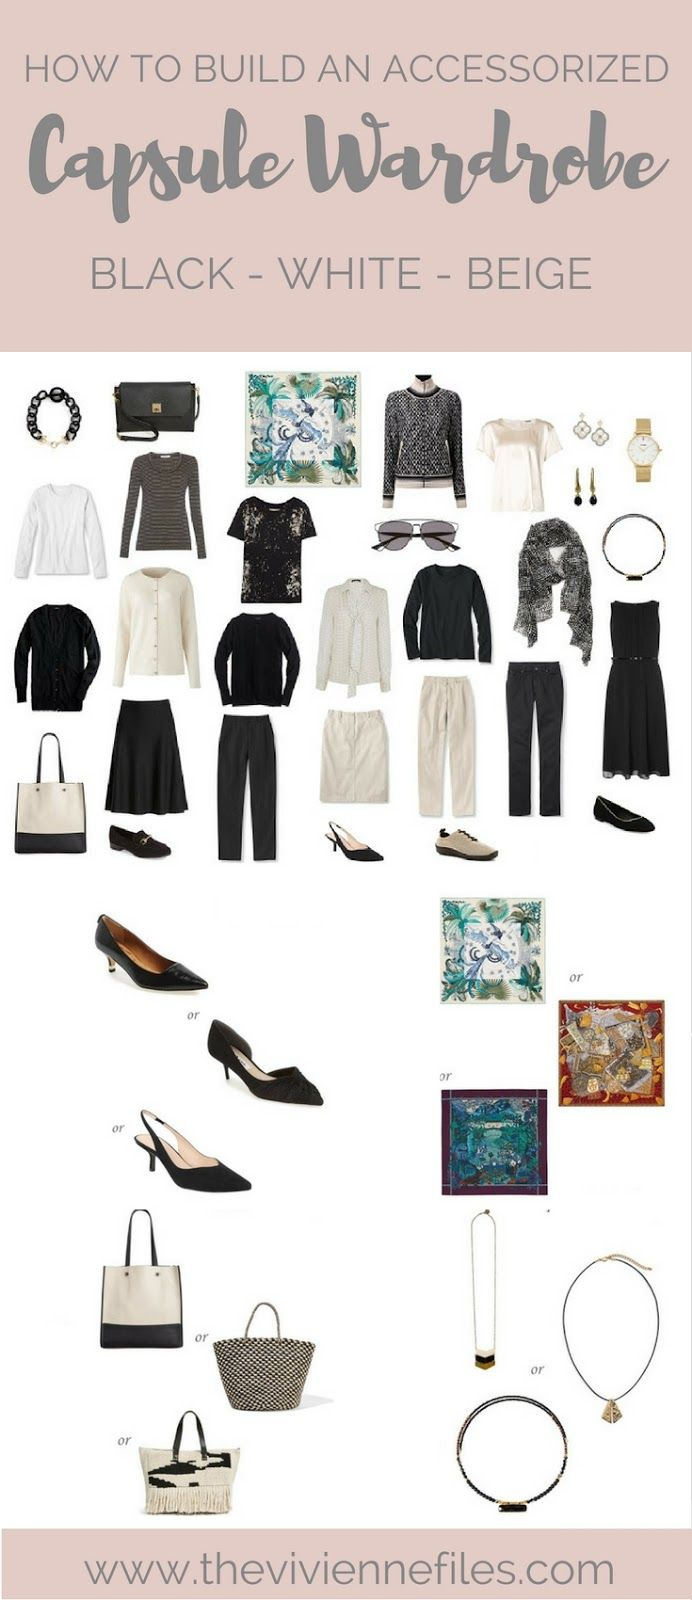 How To Add Accessories To A Capsule Wardrobe In A Black White And Beige Color Palette Travel Capsule Wardrobe Capsule Wardrobe Winter Capsule Wardrobe